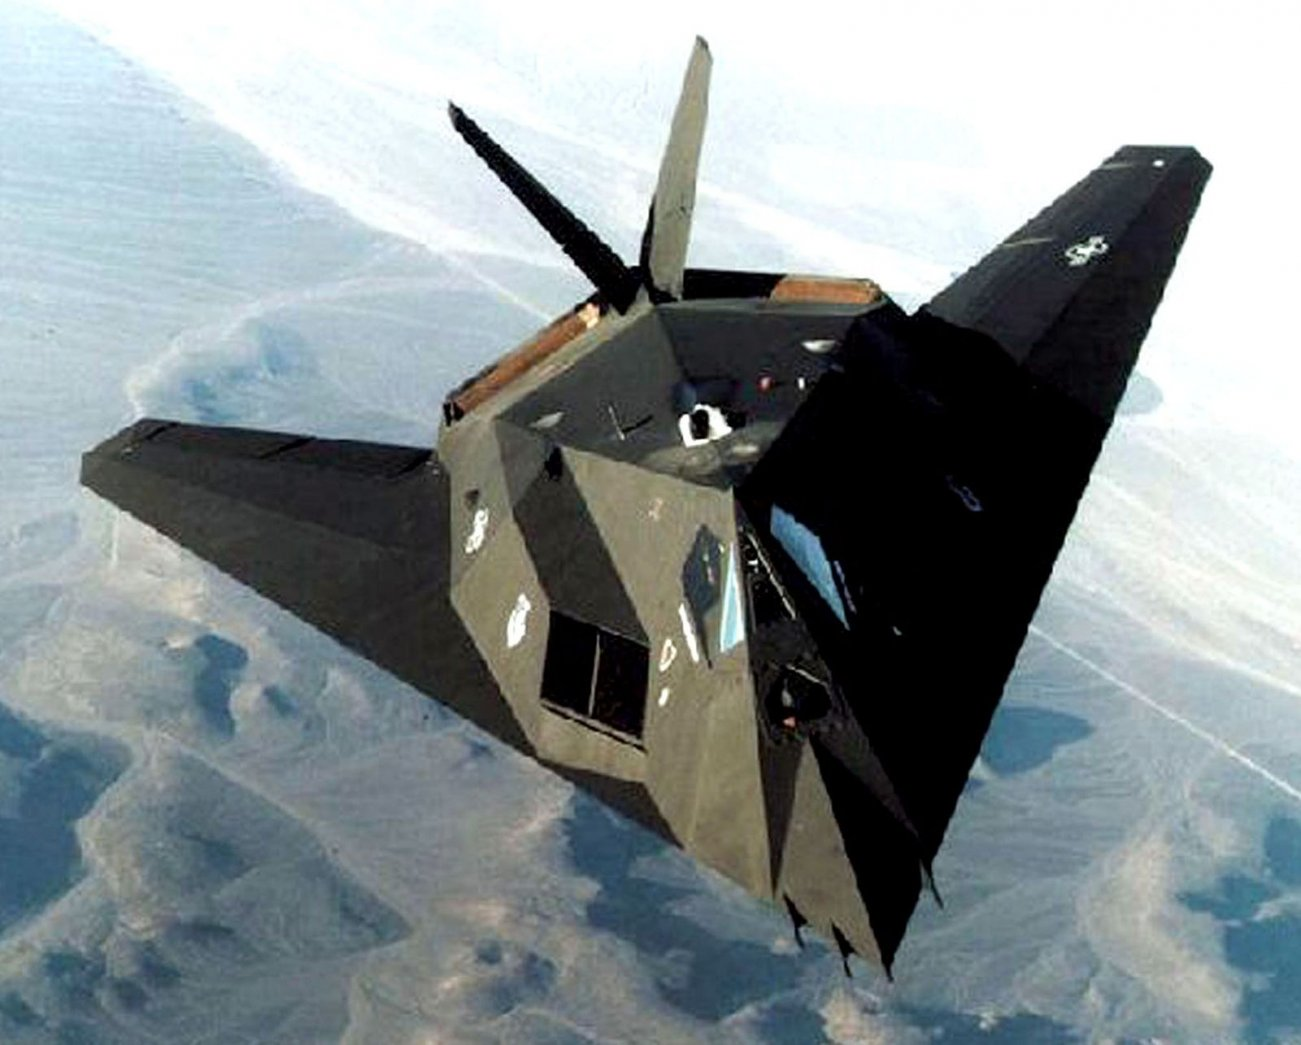 Are the F-117 Nighthawk Stealth Fighters Really Retired?